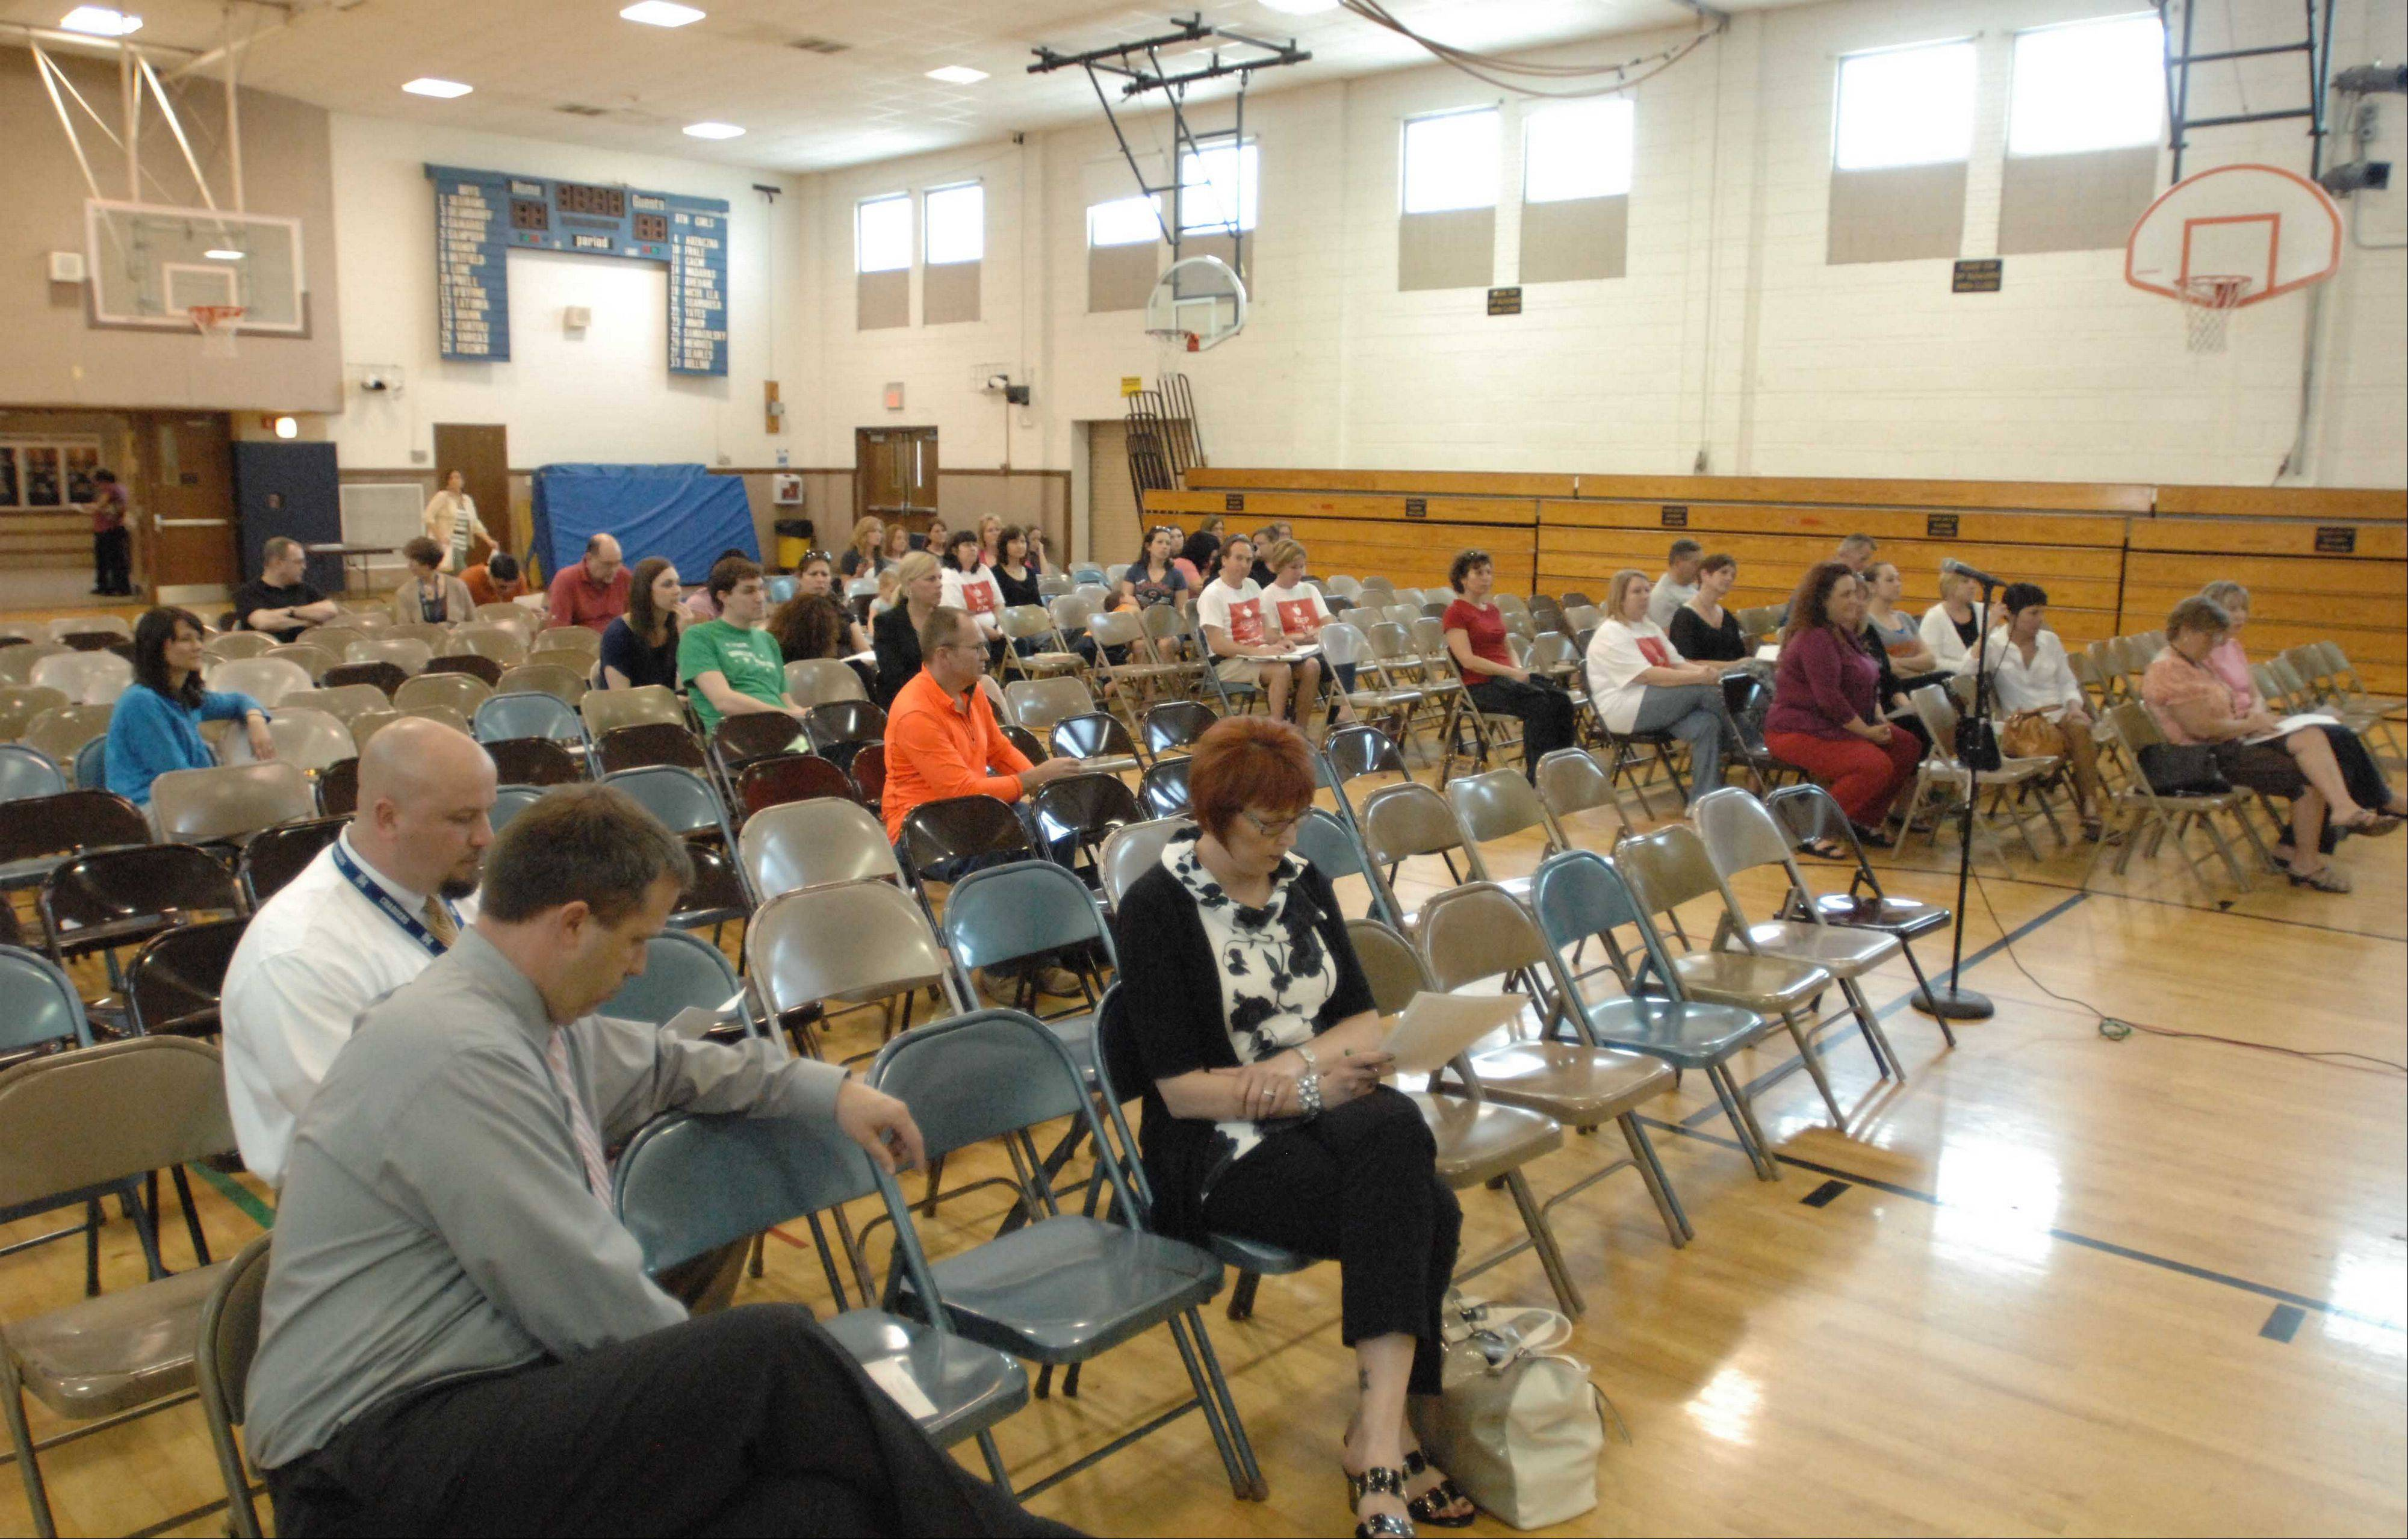 About 60 people attended the Itasca Elementary District 10 school board meeting, where board members decided to reverse some cuts that were made after voters rejected a proposed tax hike. Parents say they want all eliminated programs to be restored.